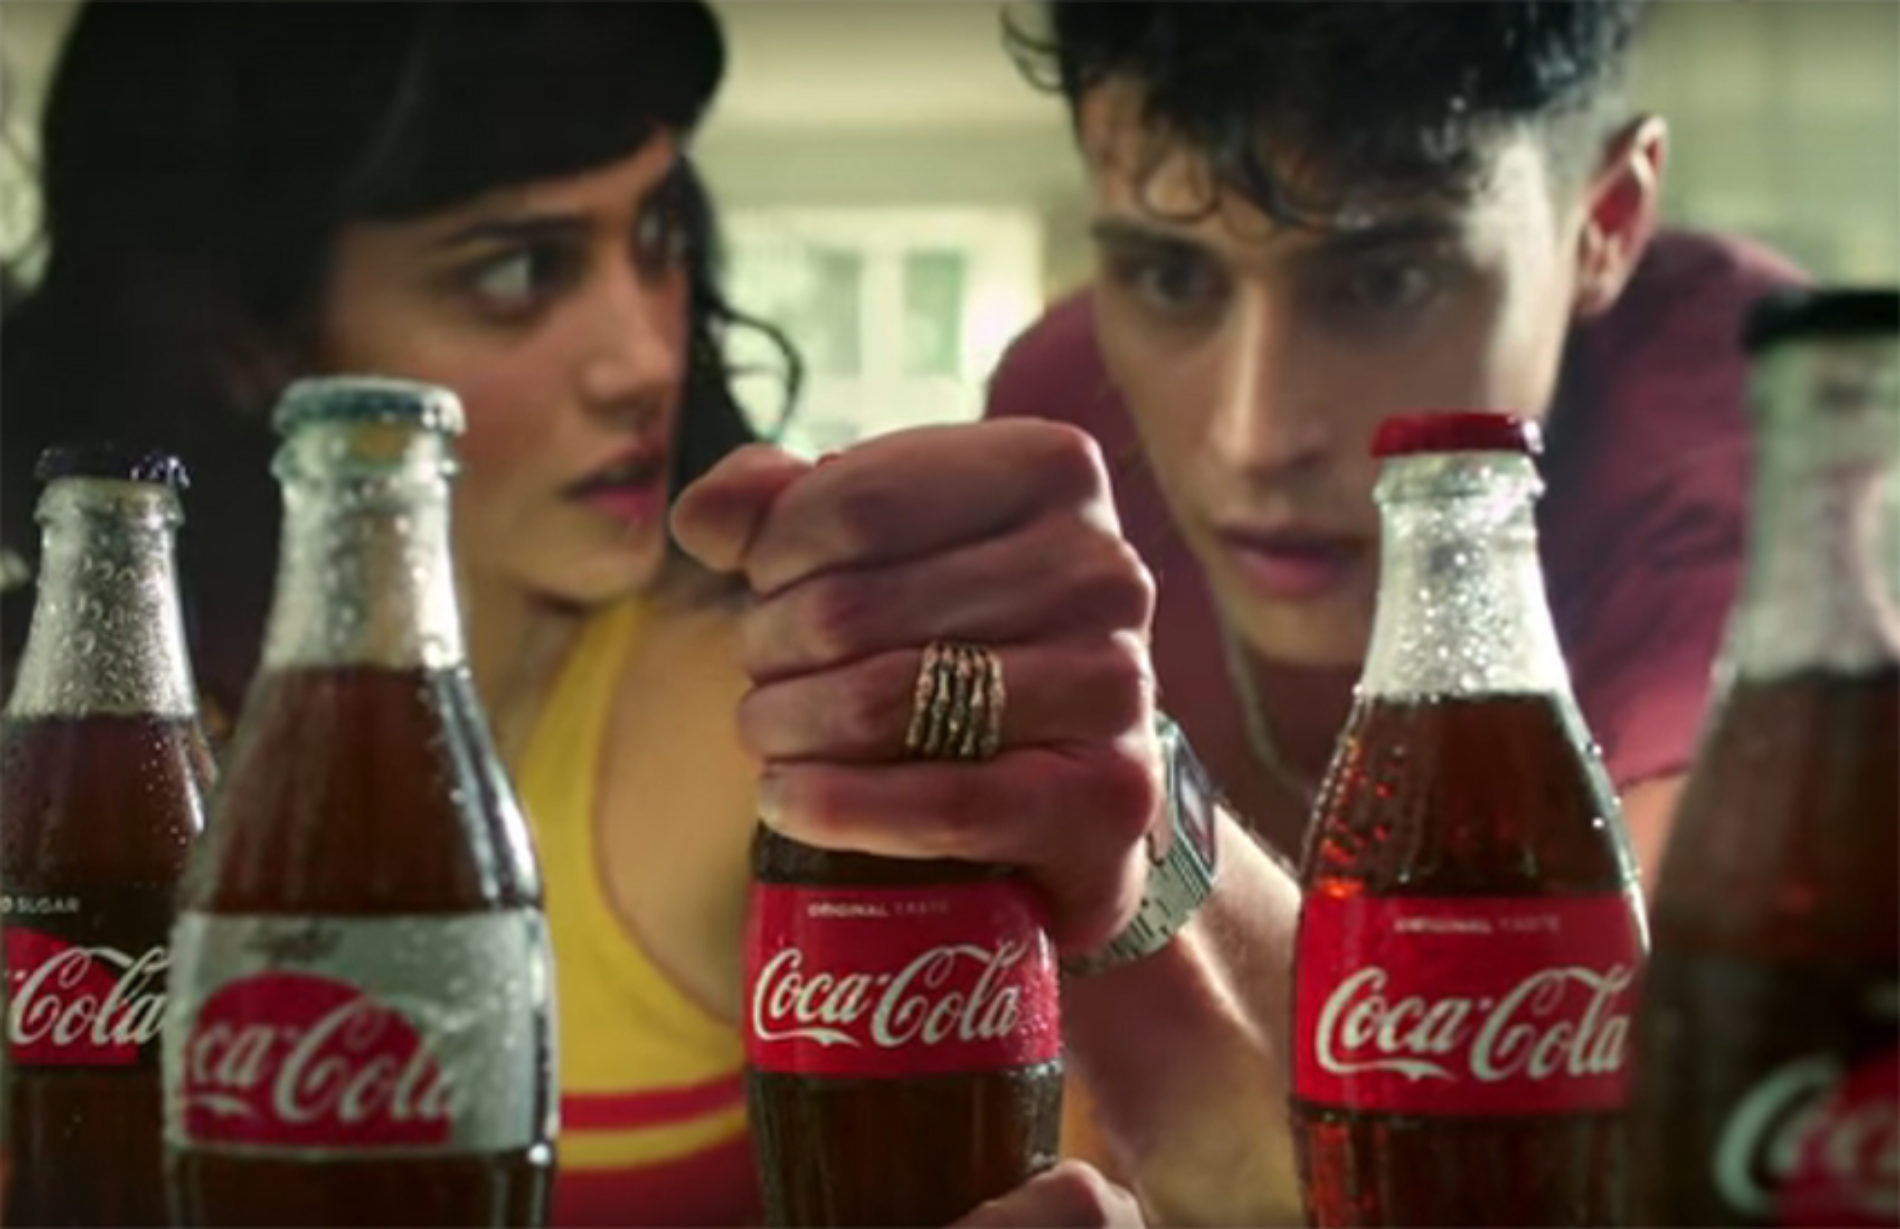 Brother and sister battle over pool boy in groundbreaking Coca-Cola advert